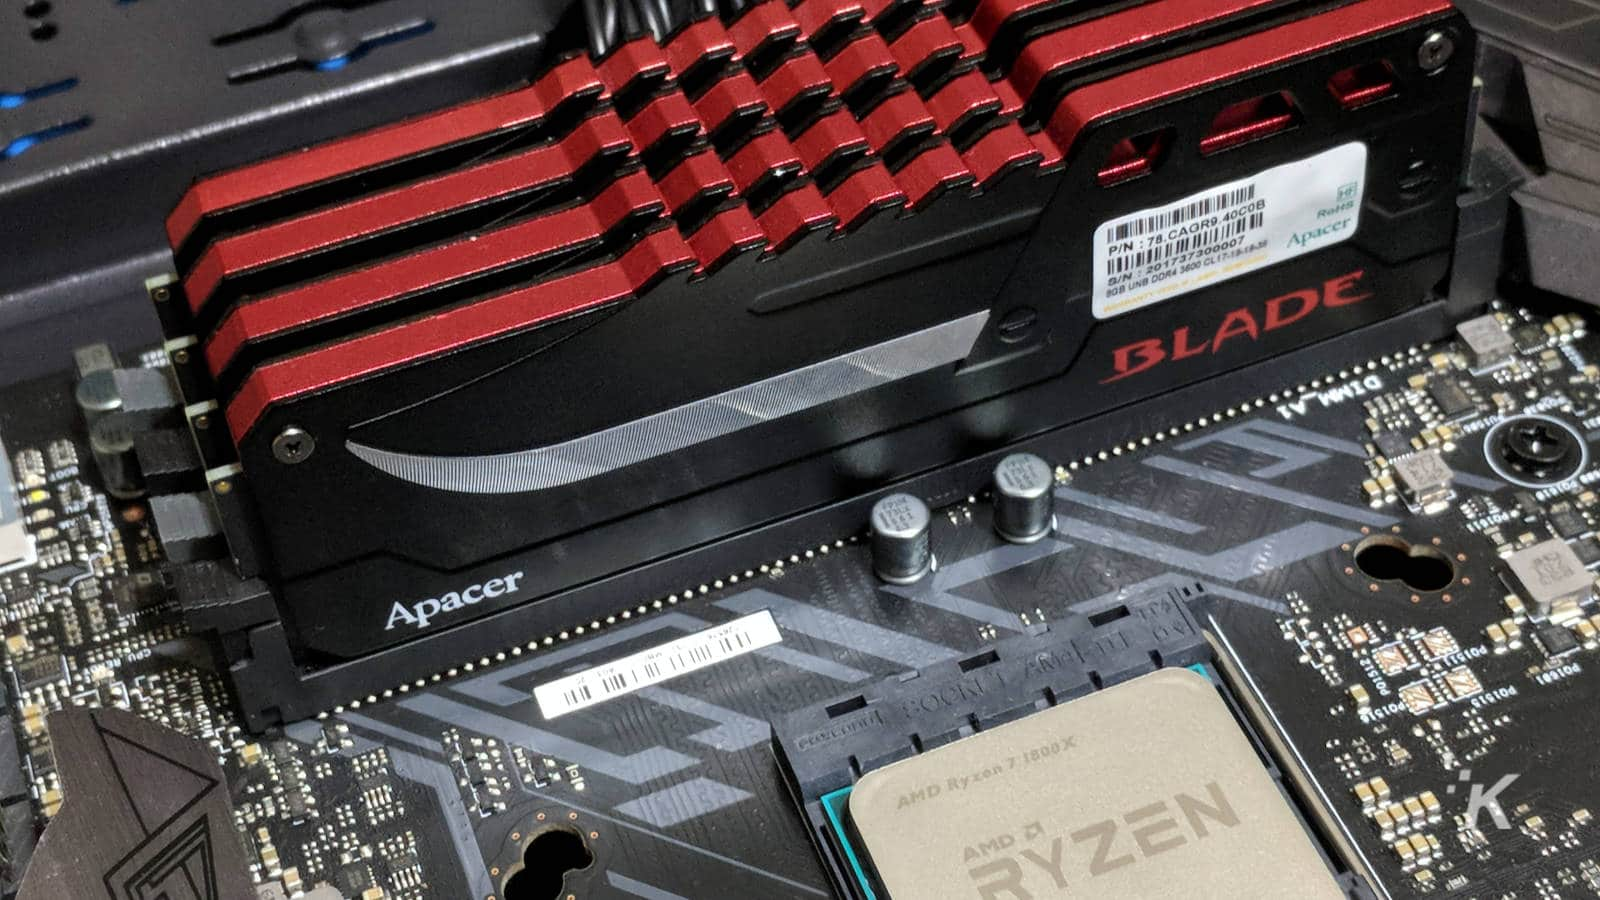 ddr4 ram dimms installed on a motherboard